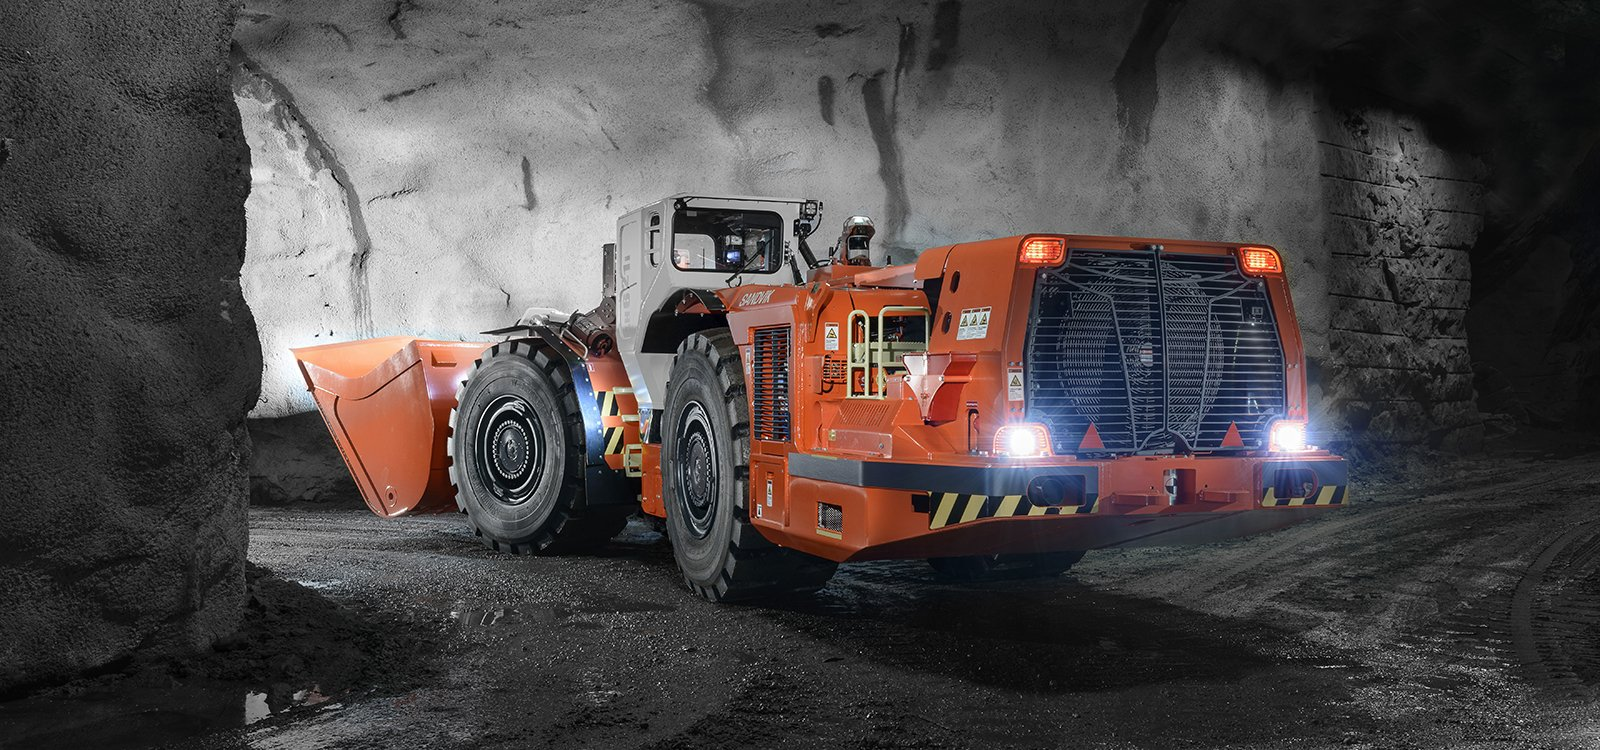 Sandvik LH621i is designed to quickly clear headings, ensuring rapid development.